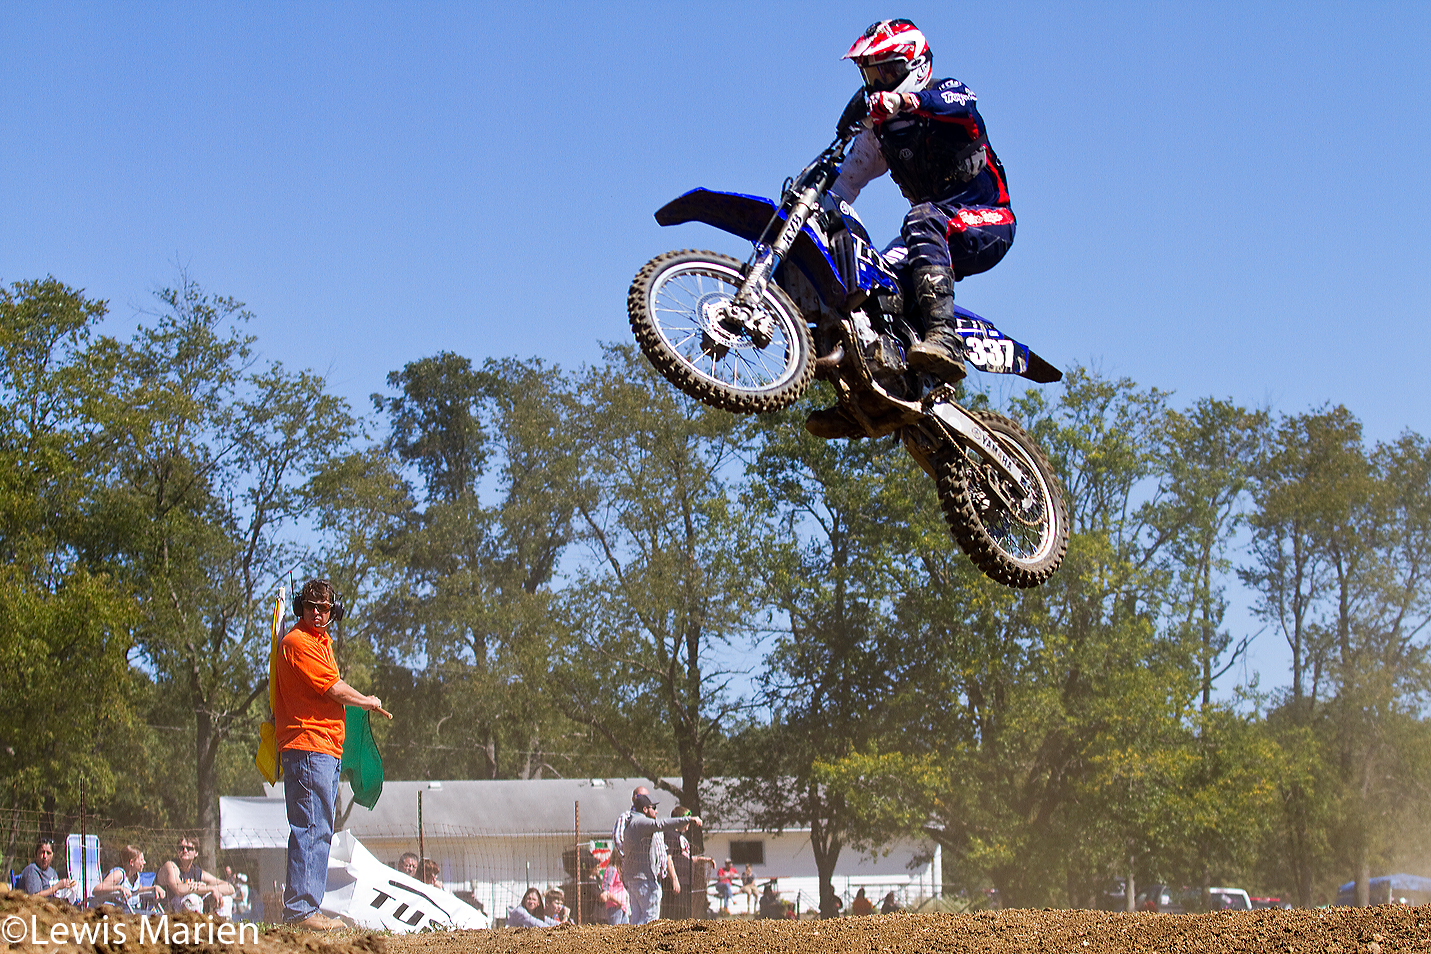 Craig Lee, of Ottawa, Ill., goes airborne during the AMA District 17 Illinois State Motocross Championship on Sept. 20 at the Galesburg Motorcycle Club near Rio, Ill.